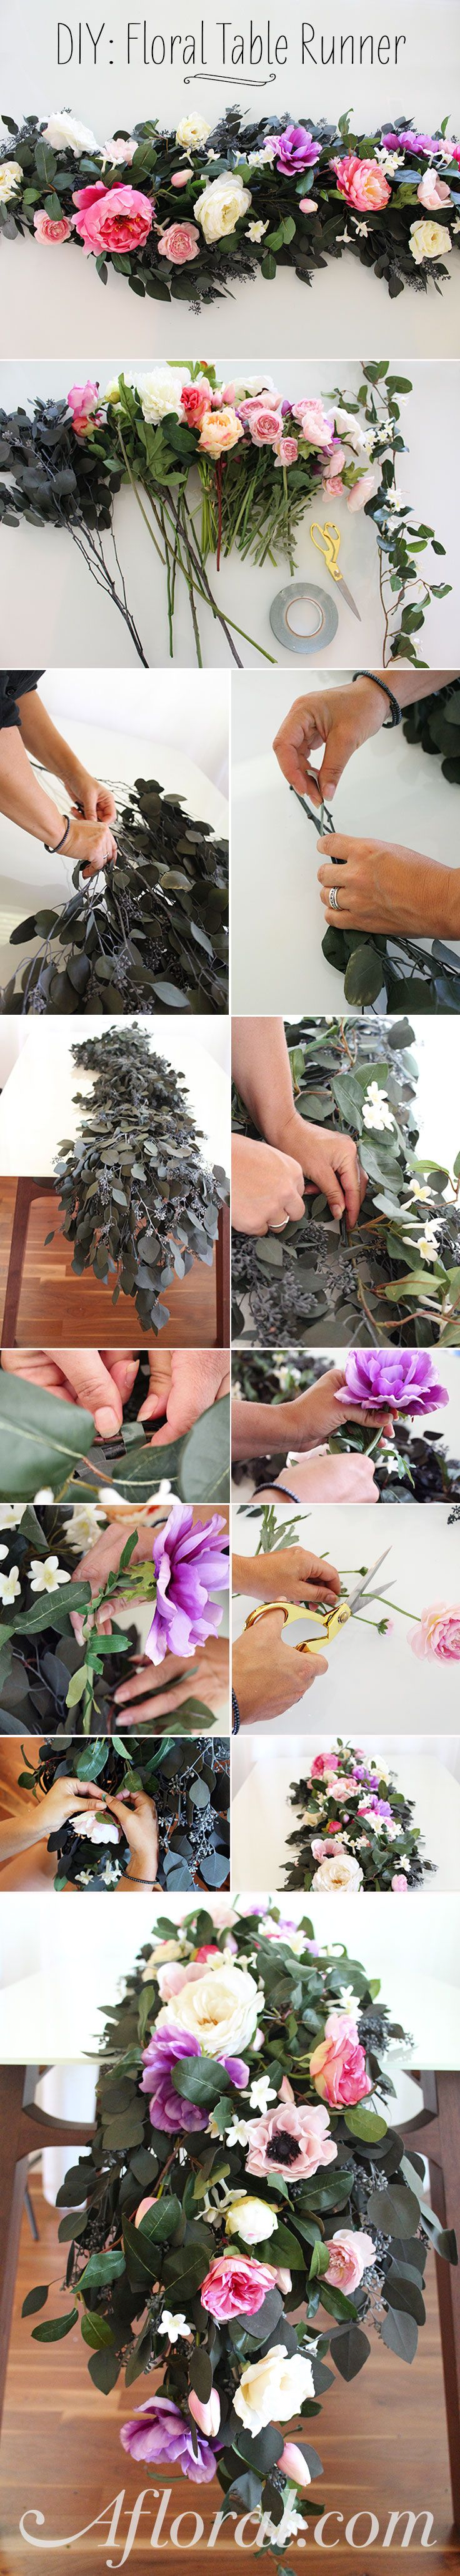 Make a gorgeous floral table runner for your wedding using faux flowers and preserved eucalyptus from afloral.com! #fauxflowers